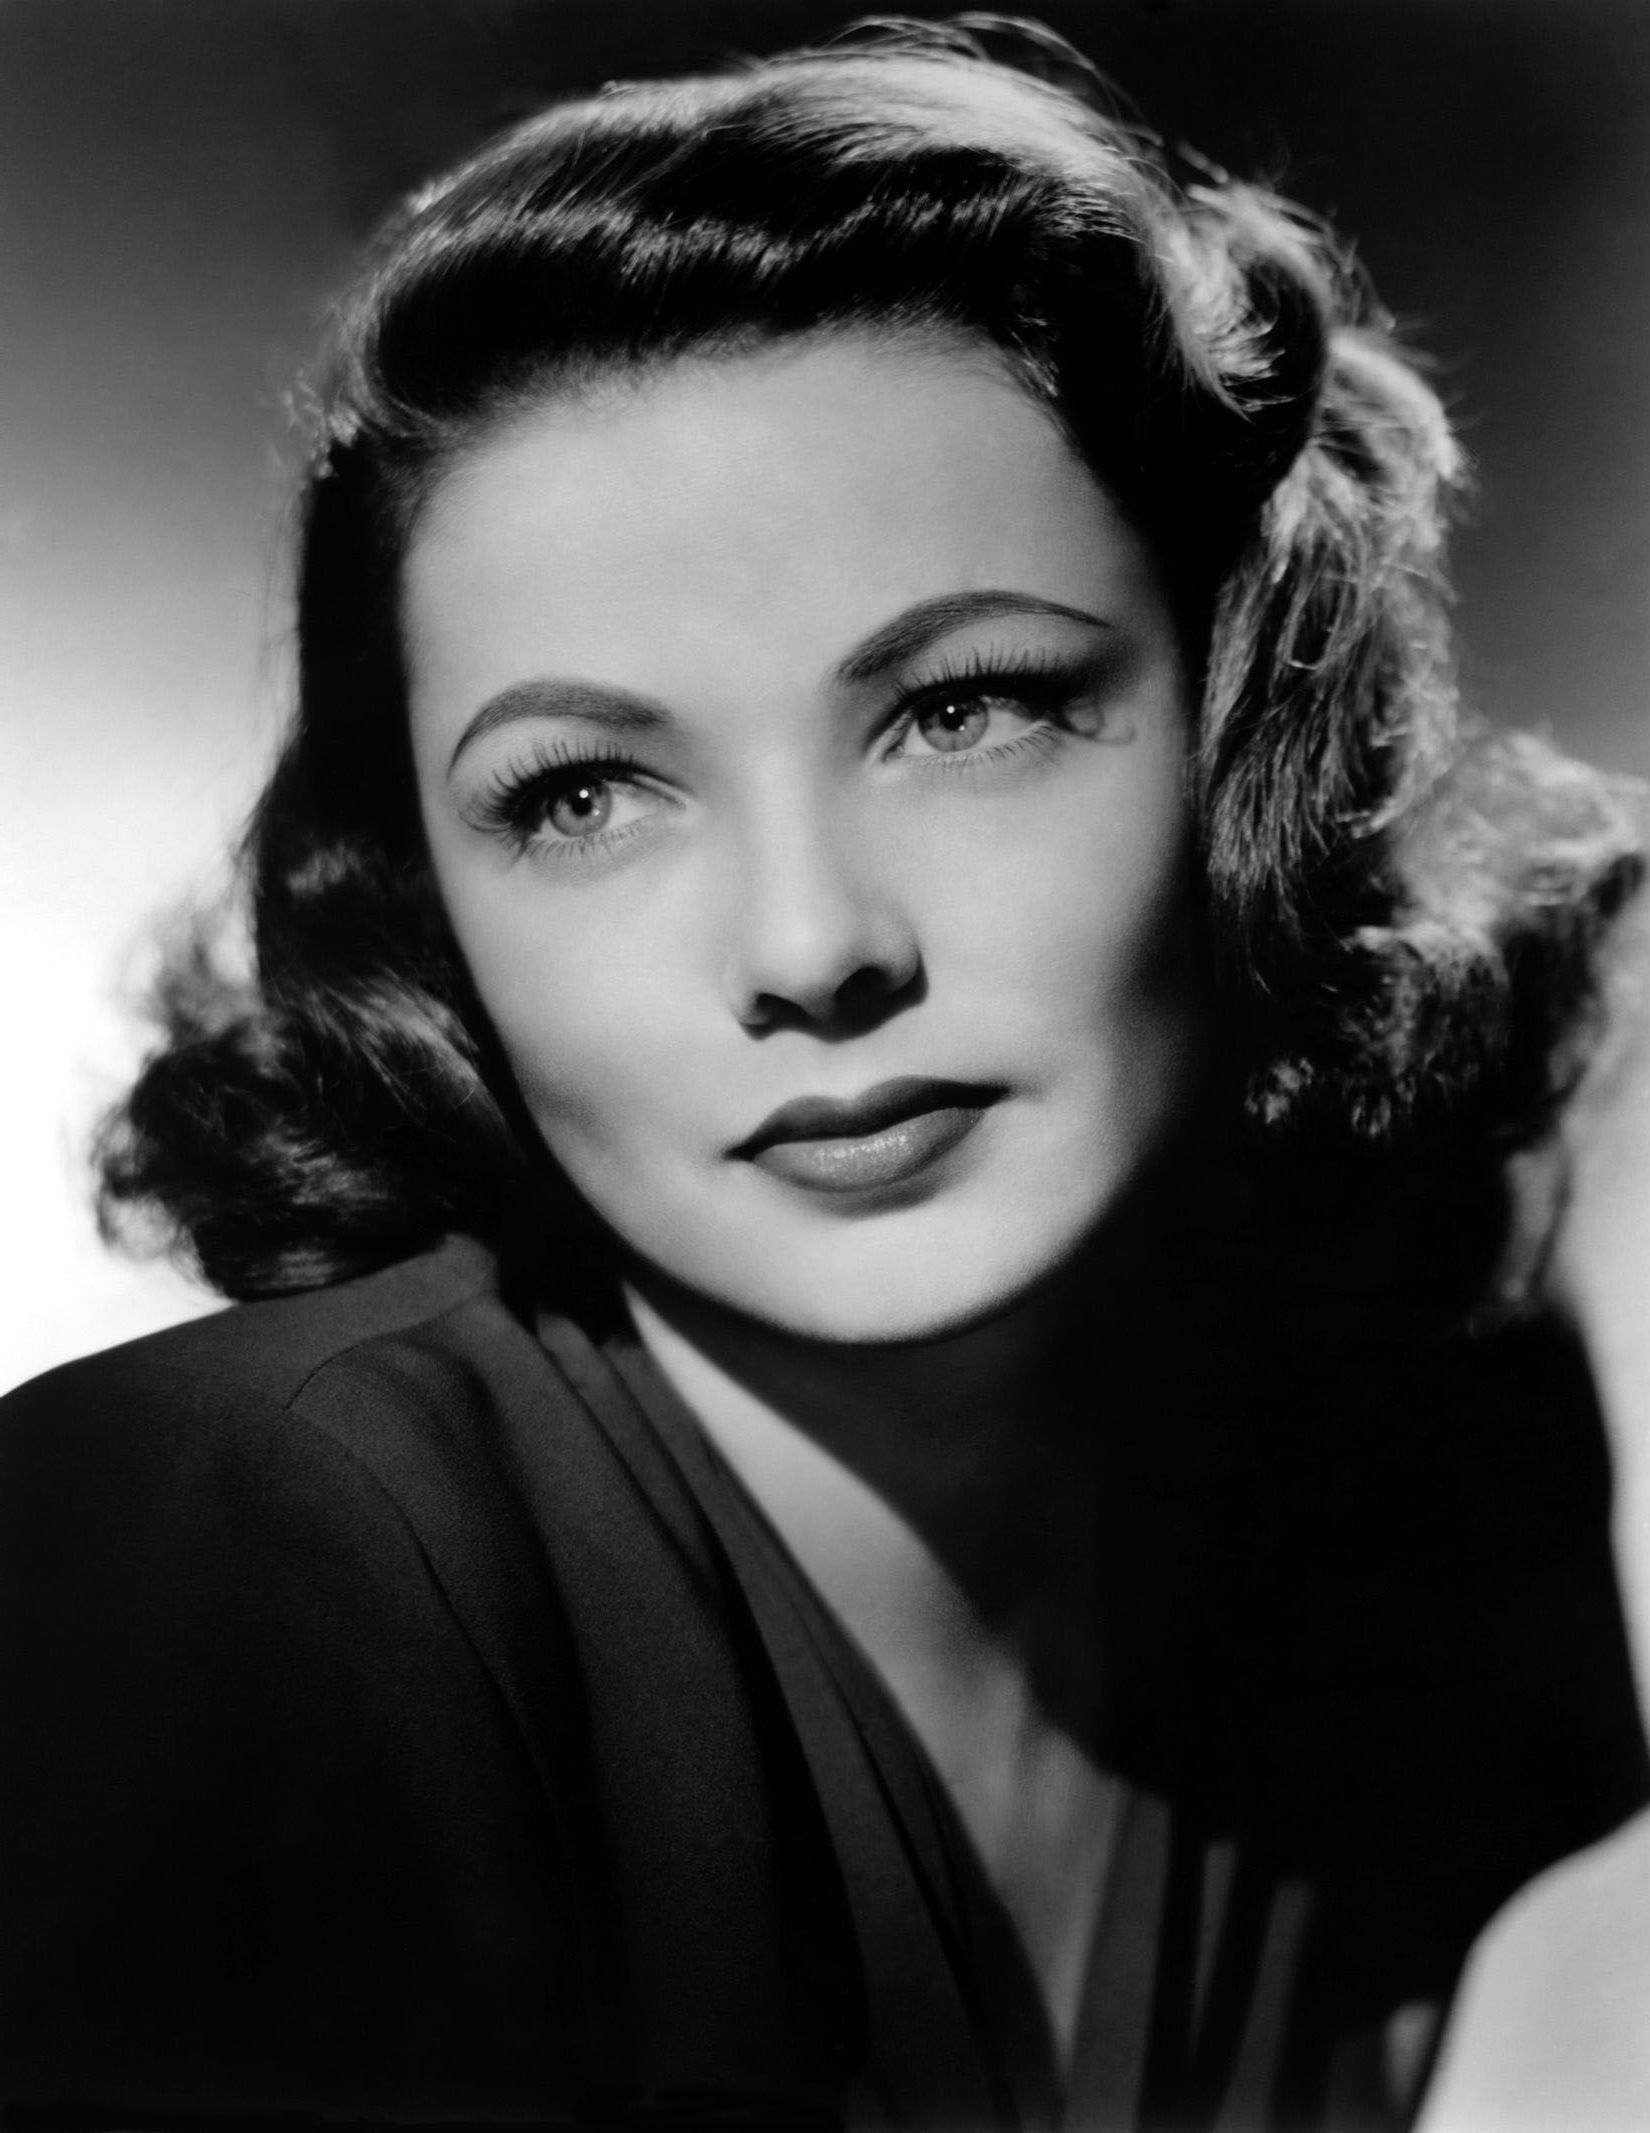 actrice am ricaine charmante gene tierney noir et blanc belles pinterest acteurs. Black Bedroom Furniture Sets. Home Design Ideas